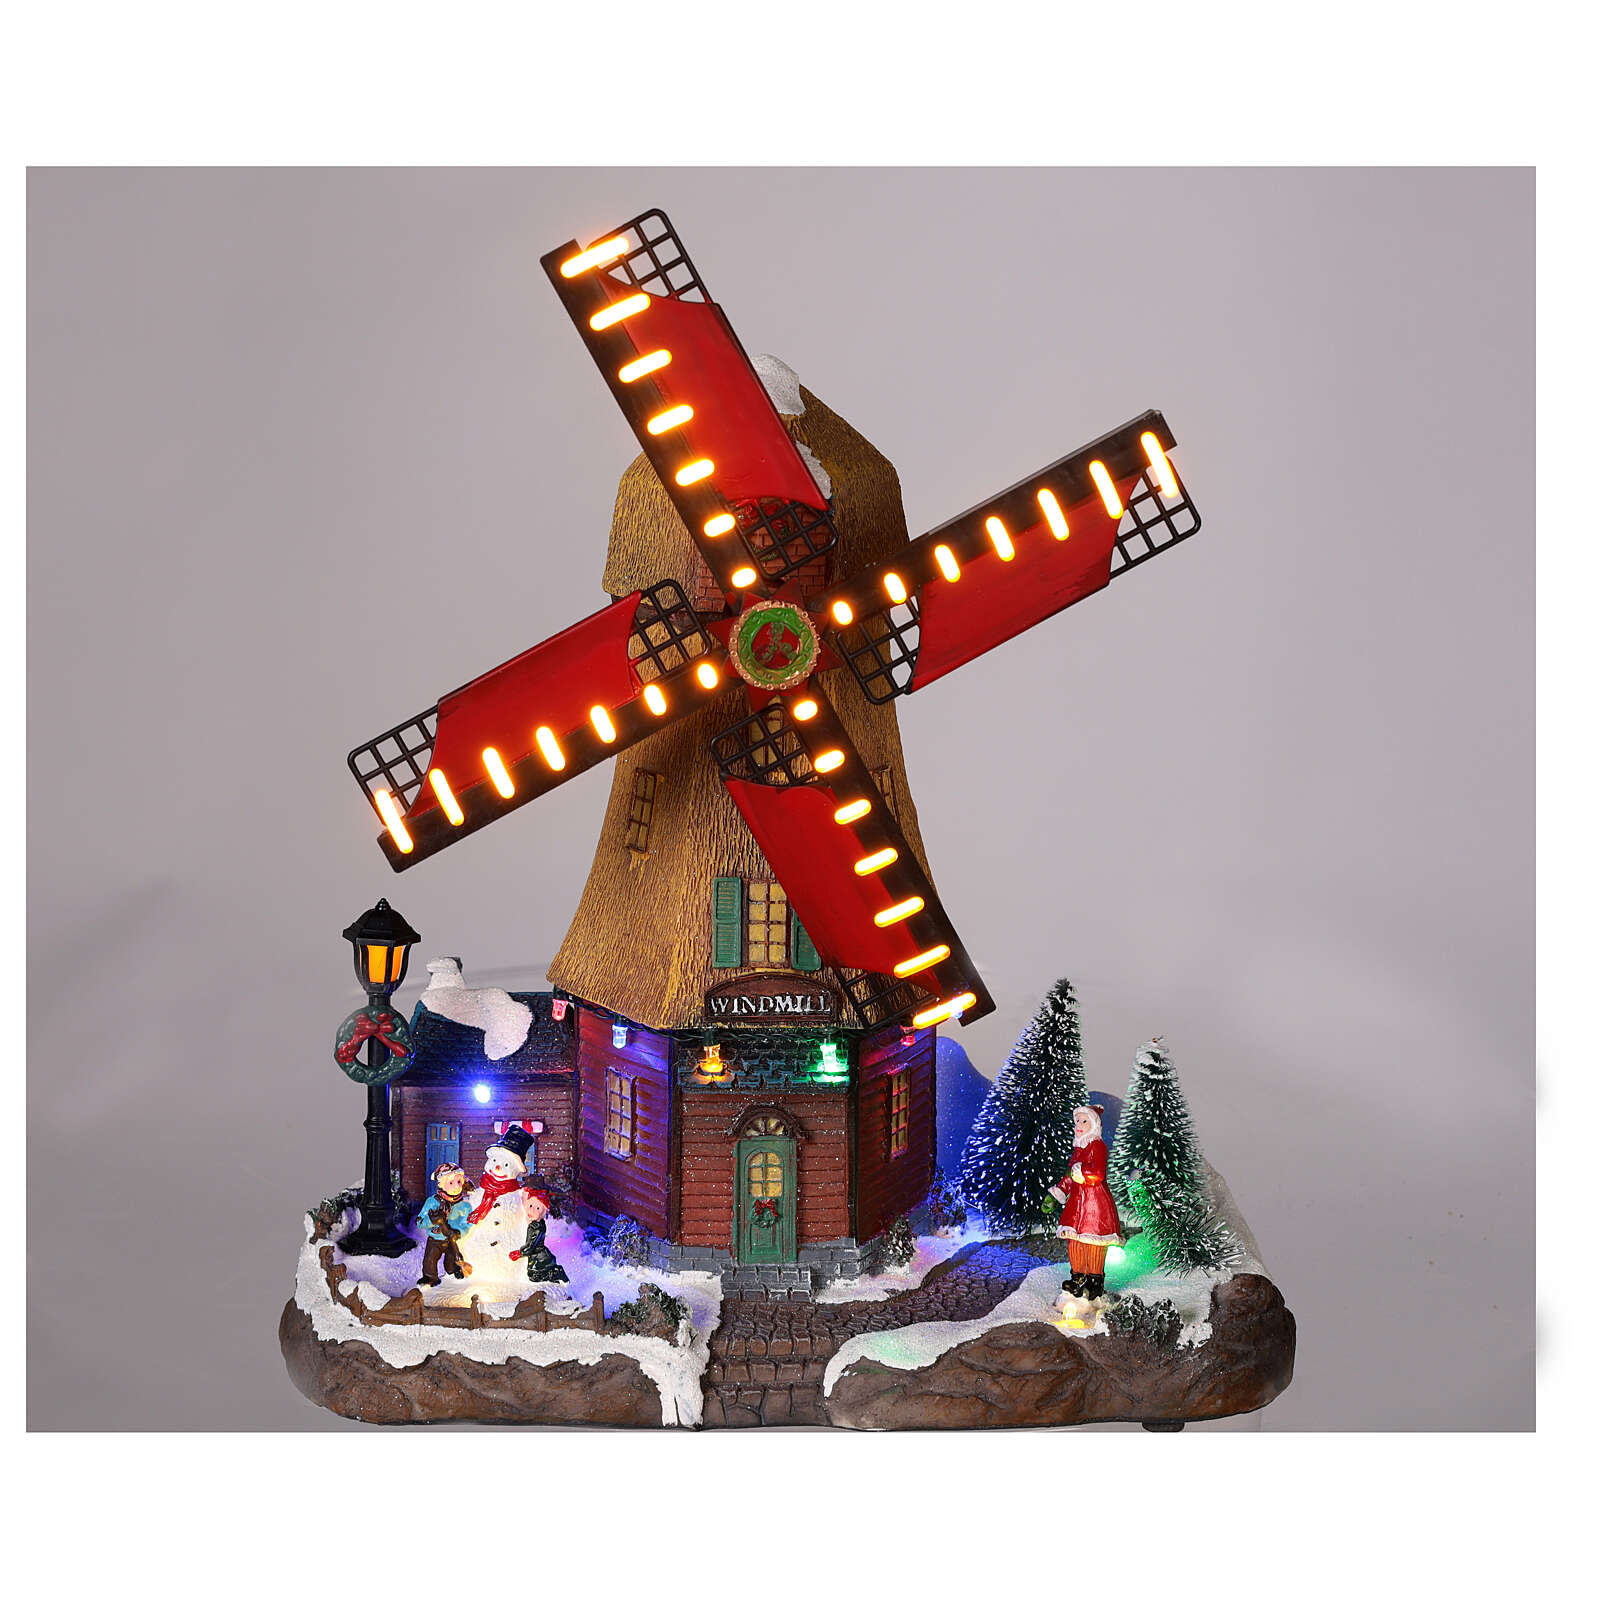 Wind mill with lights and music 25x25x10 cm 3